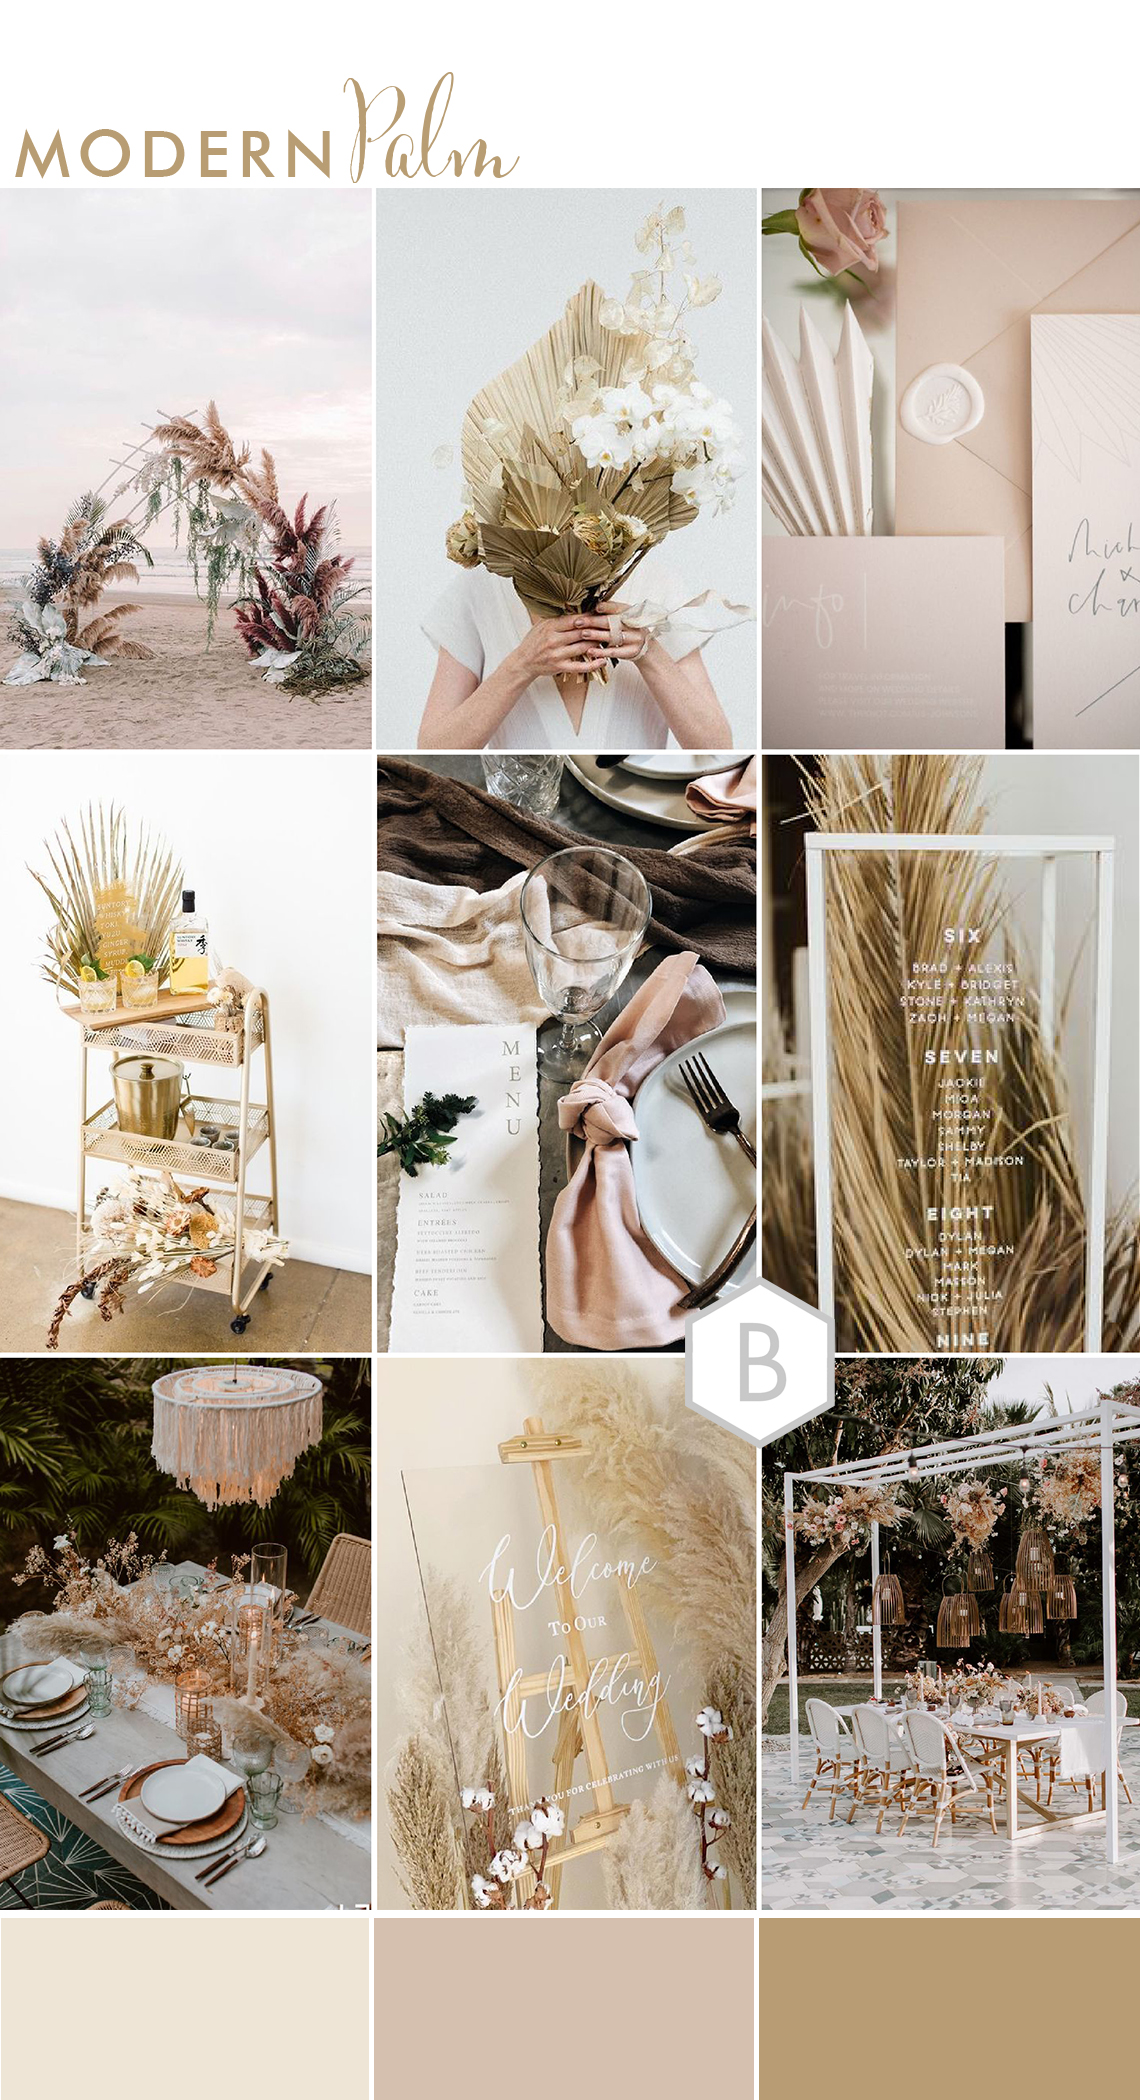 wedding moodboard ideas for modern relaxed beach destination wedding with dried palm leaf trend